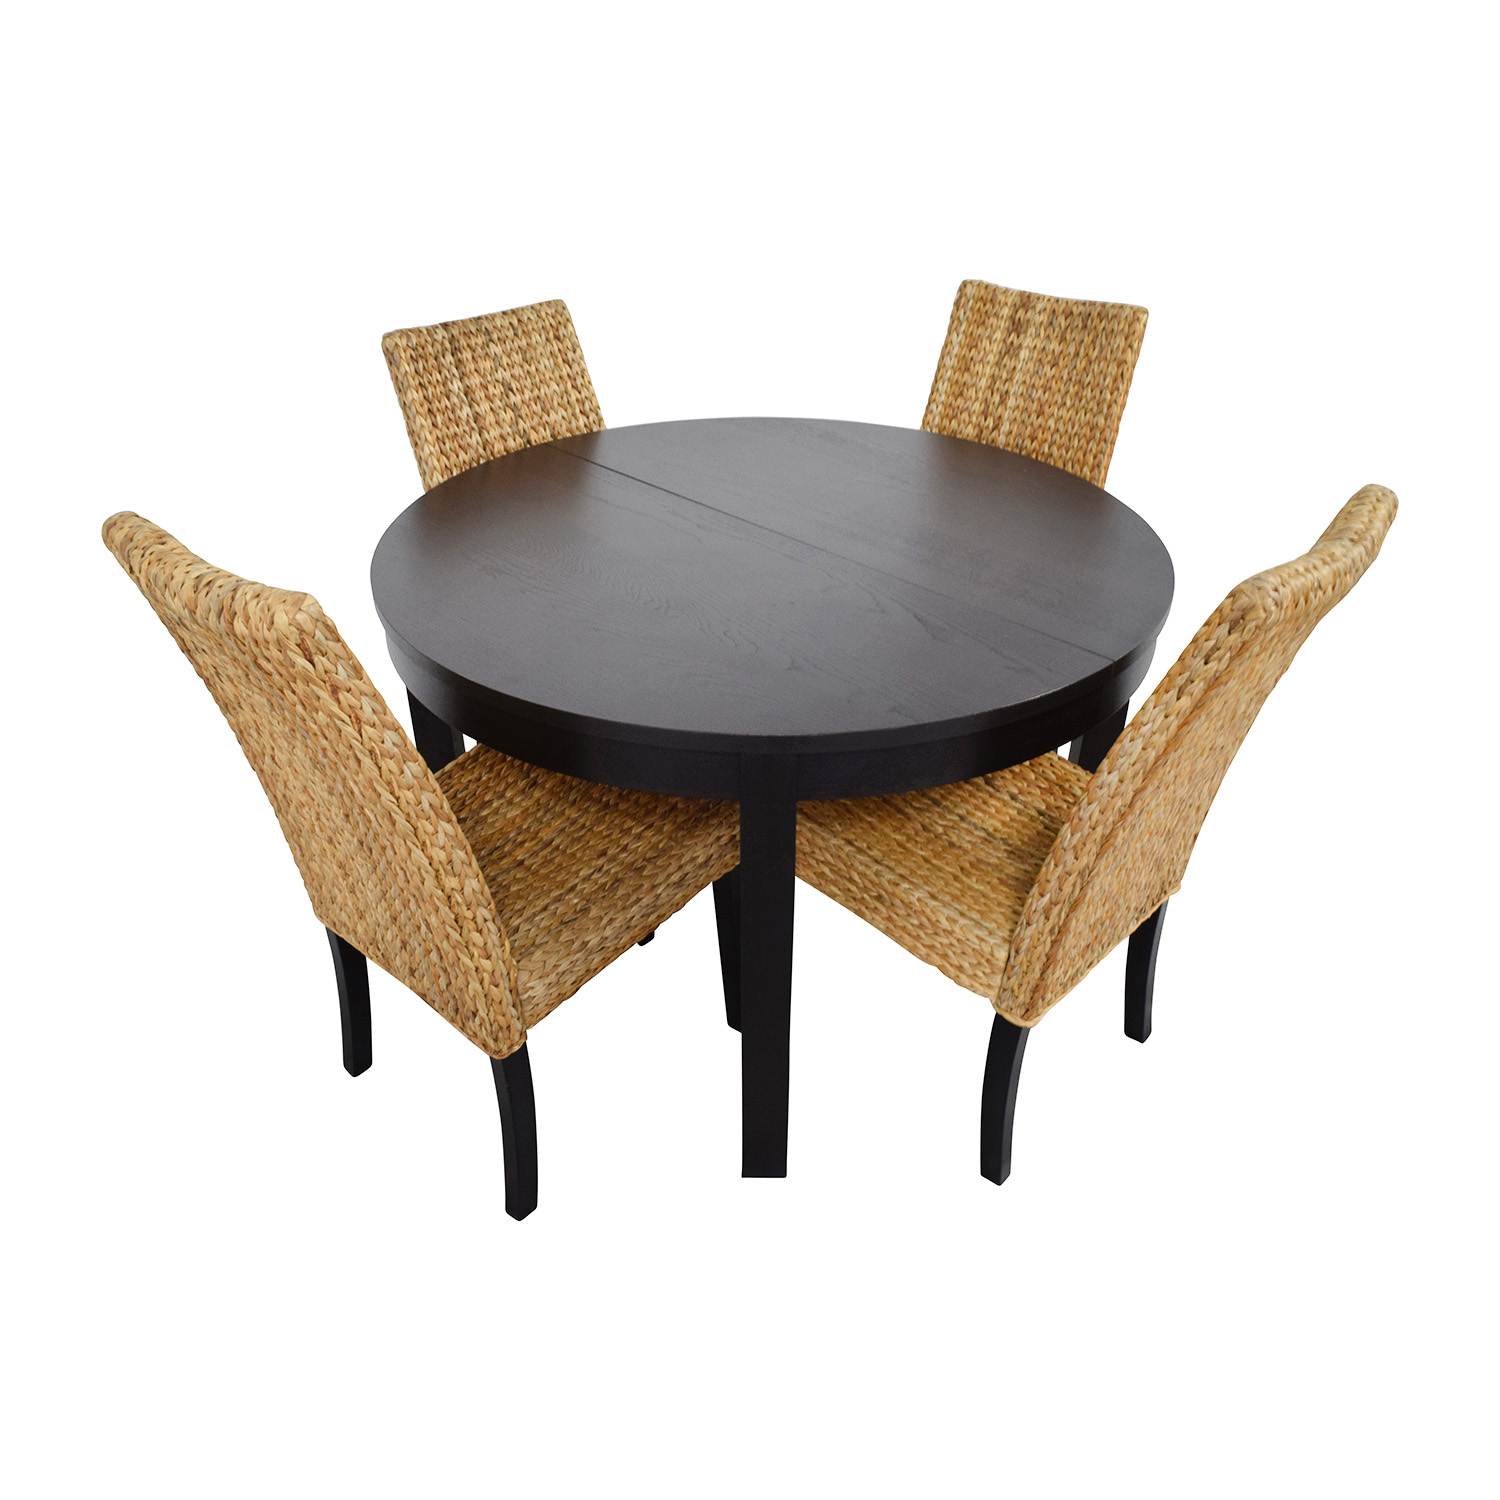 Breakfast Table Chairs 66 Off Macy 39s And Ikea Round Black Dining Table Set With